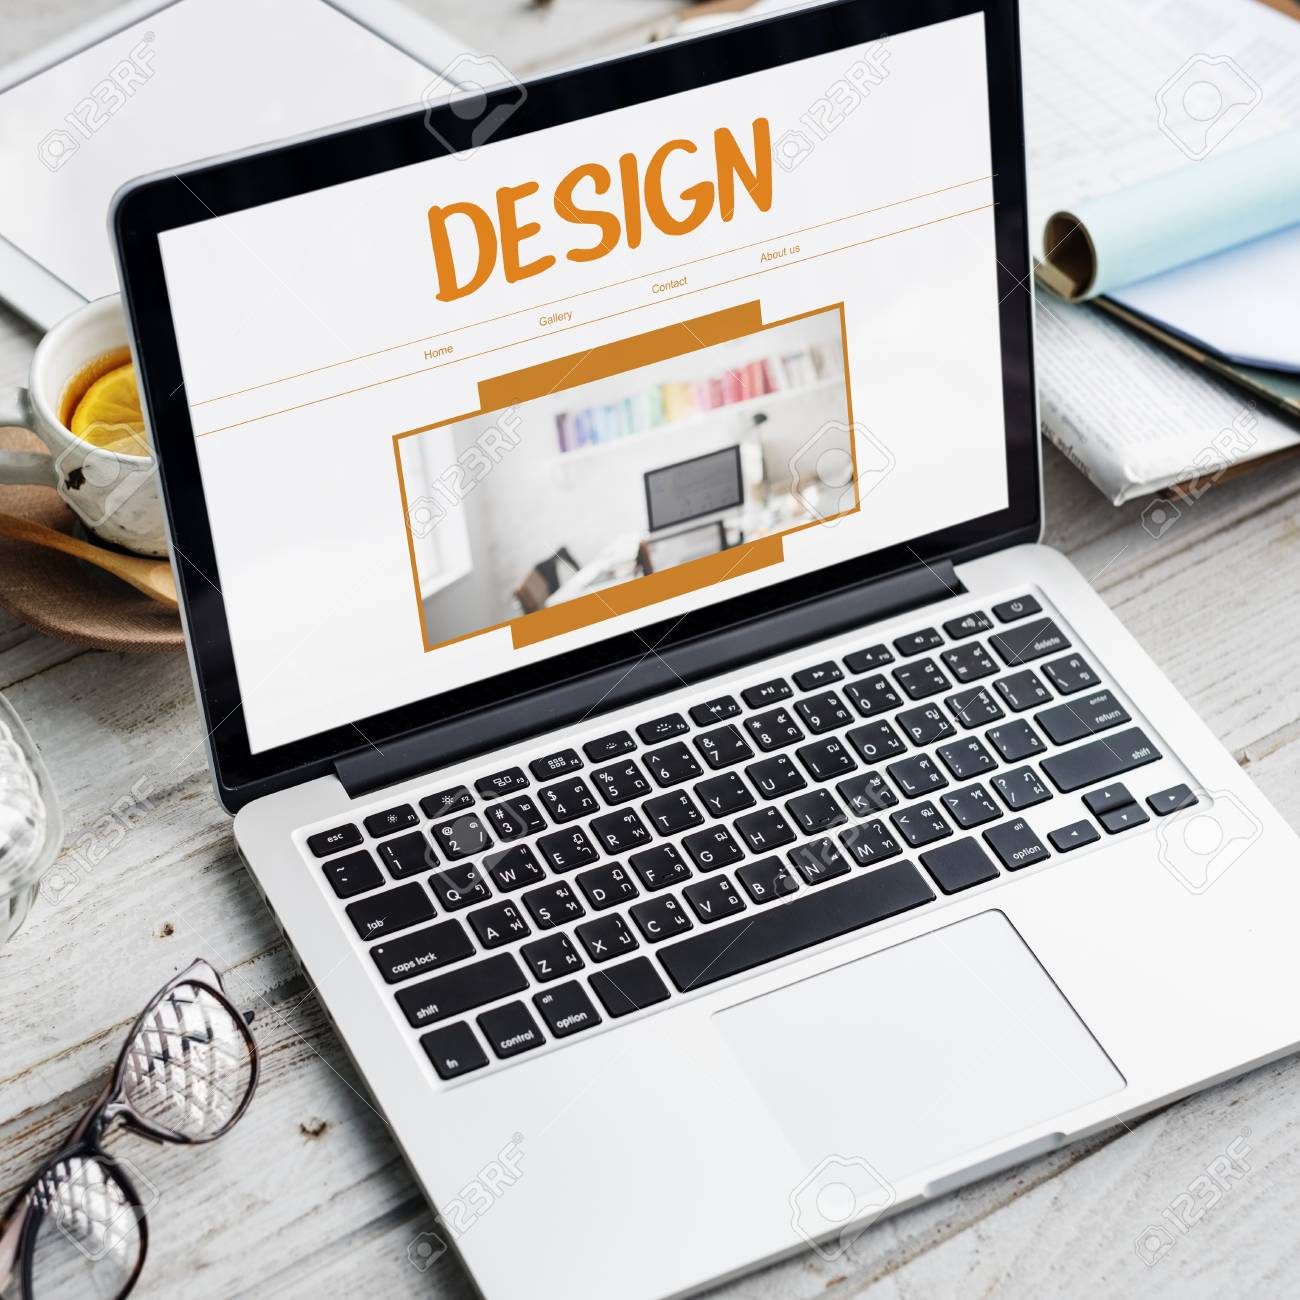 Design Creative Drawing Model Objective Stock Photo - 74364009